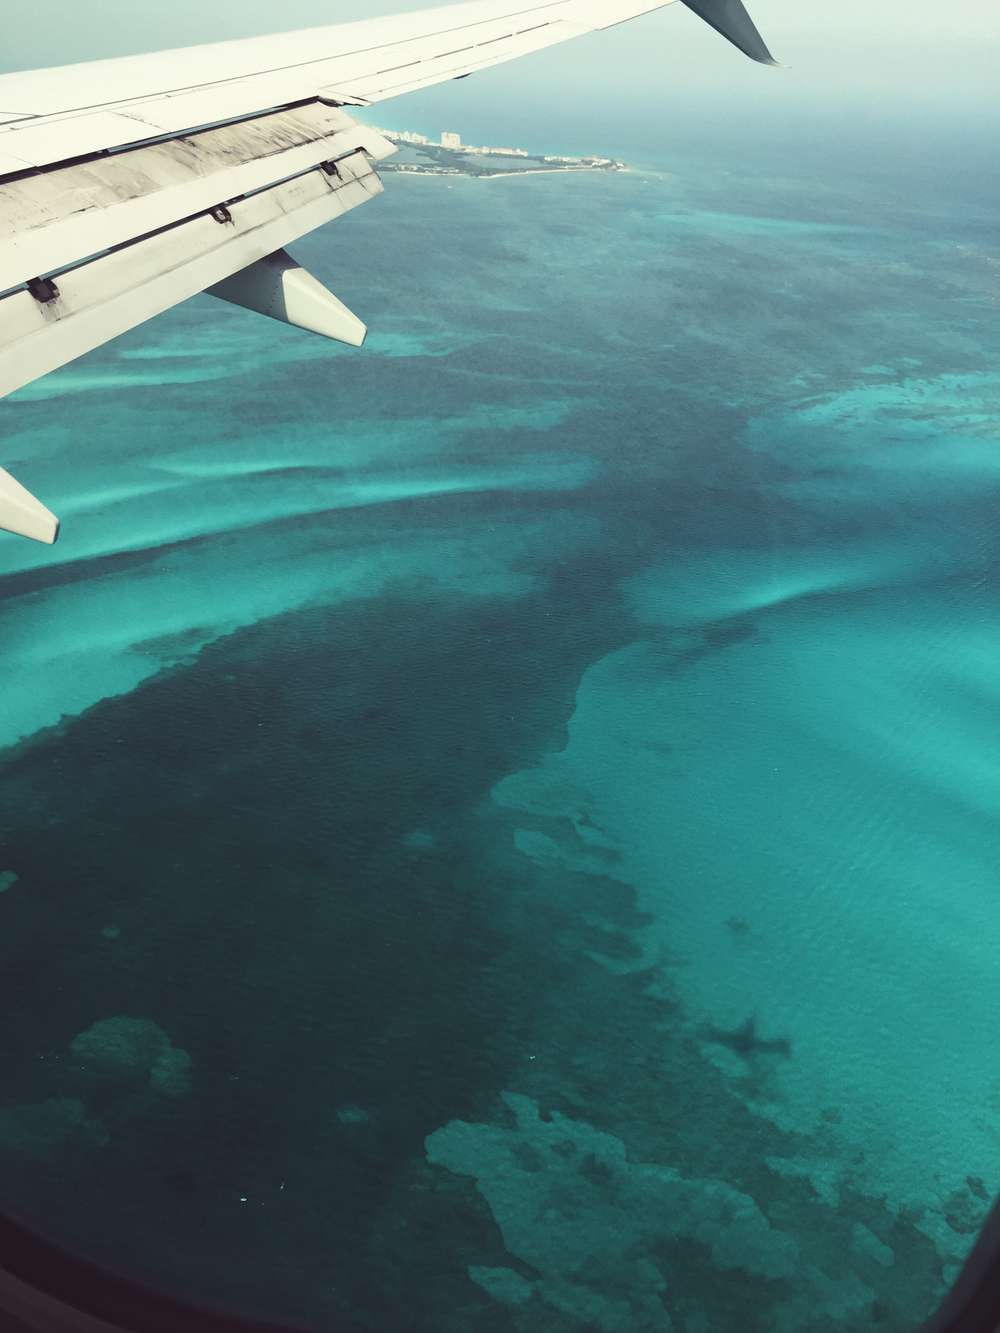 View of Mexico ocean from plane window